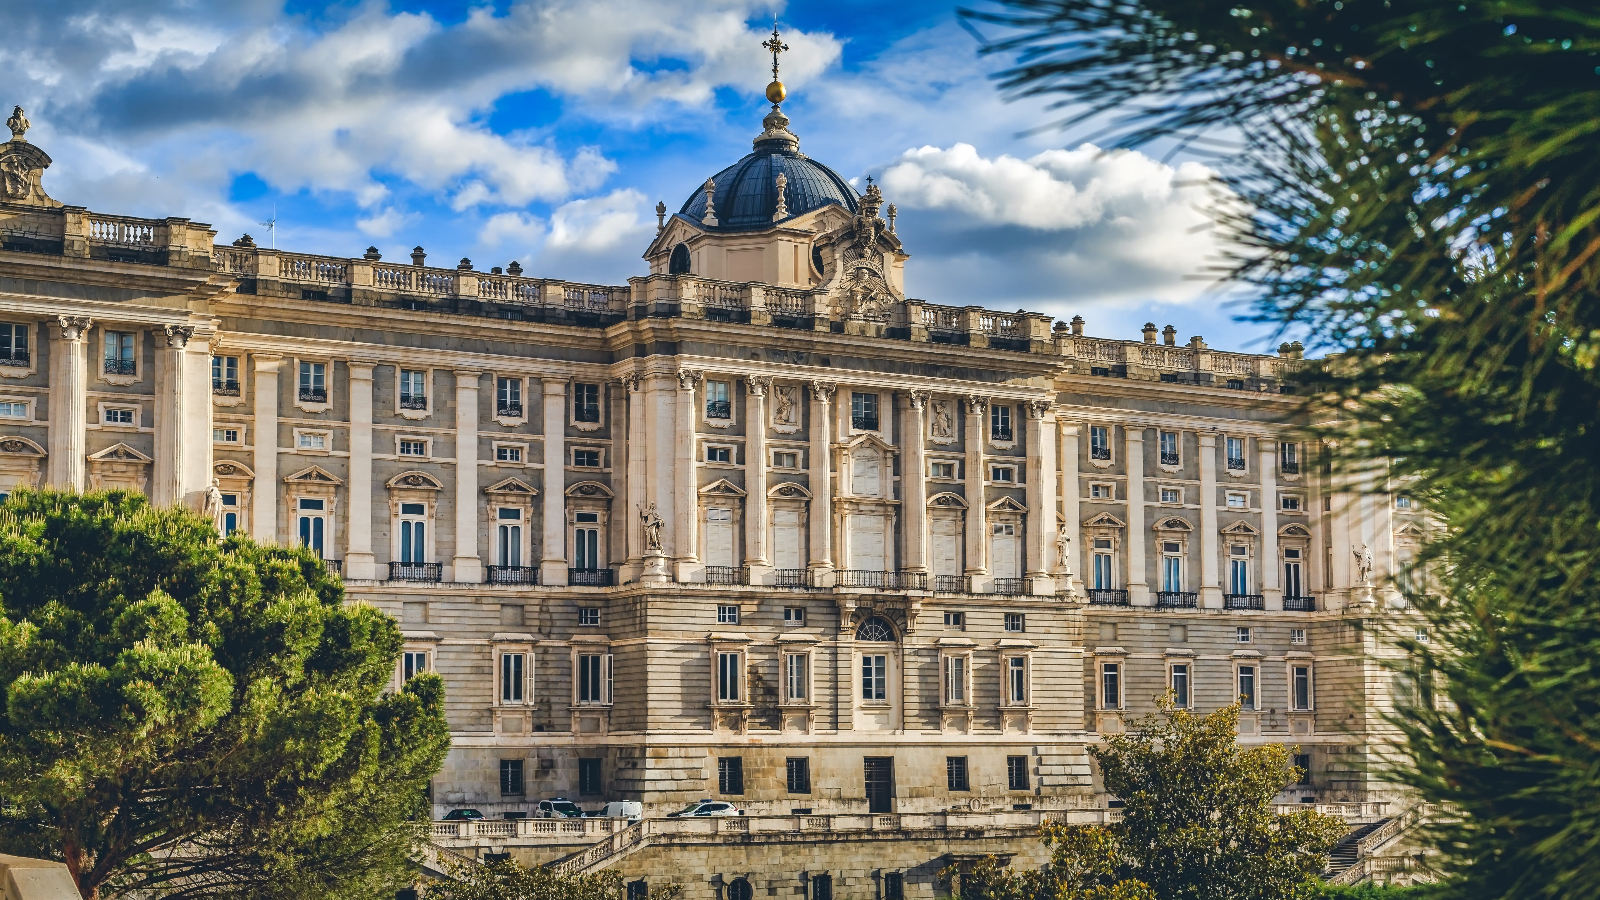 An old palace in Madrid - photo by Piqsels under CC0 1.0